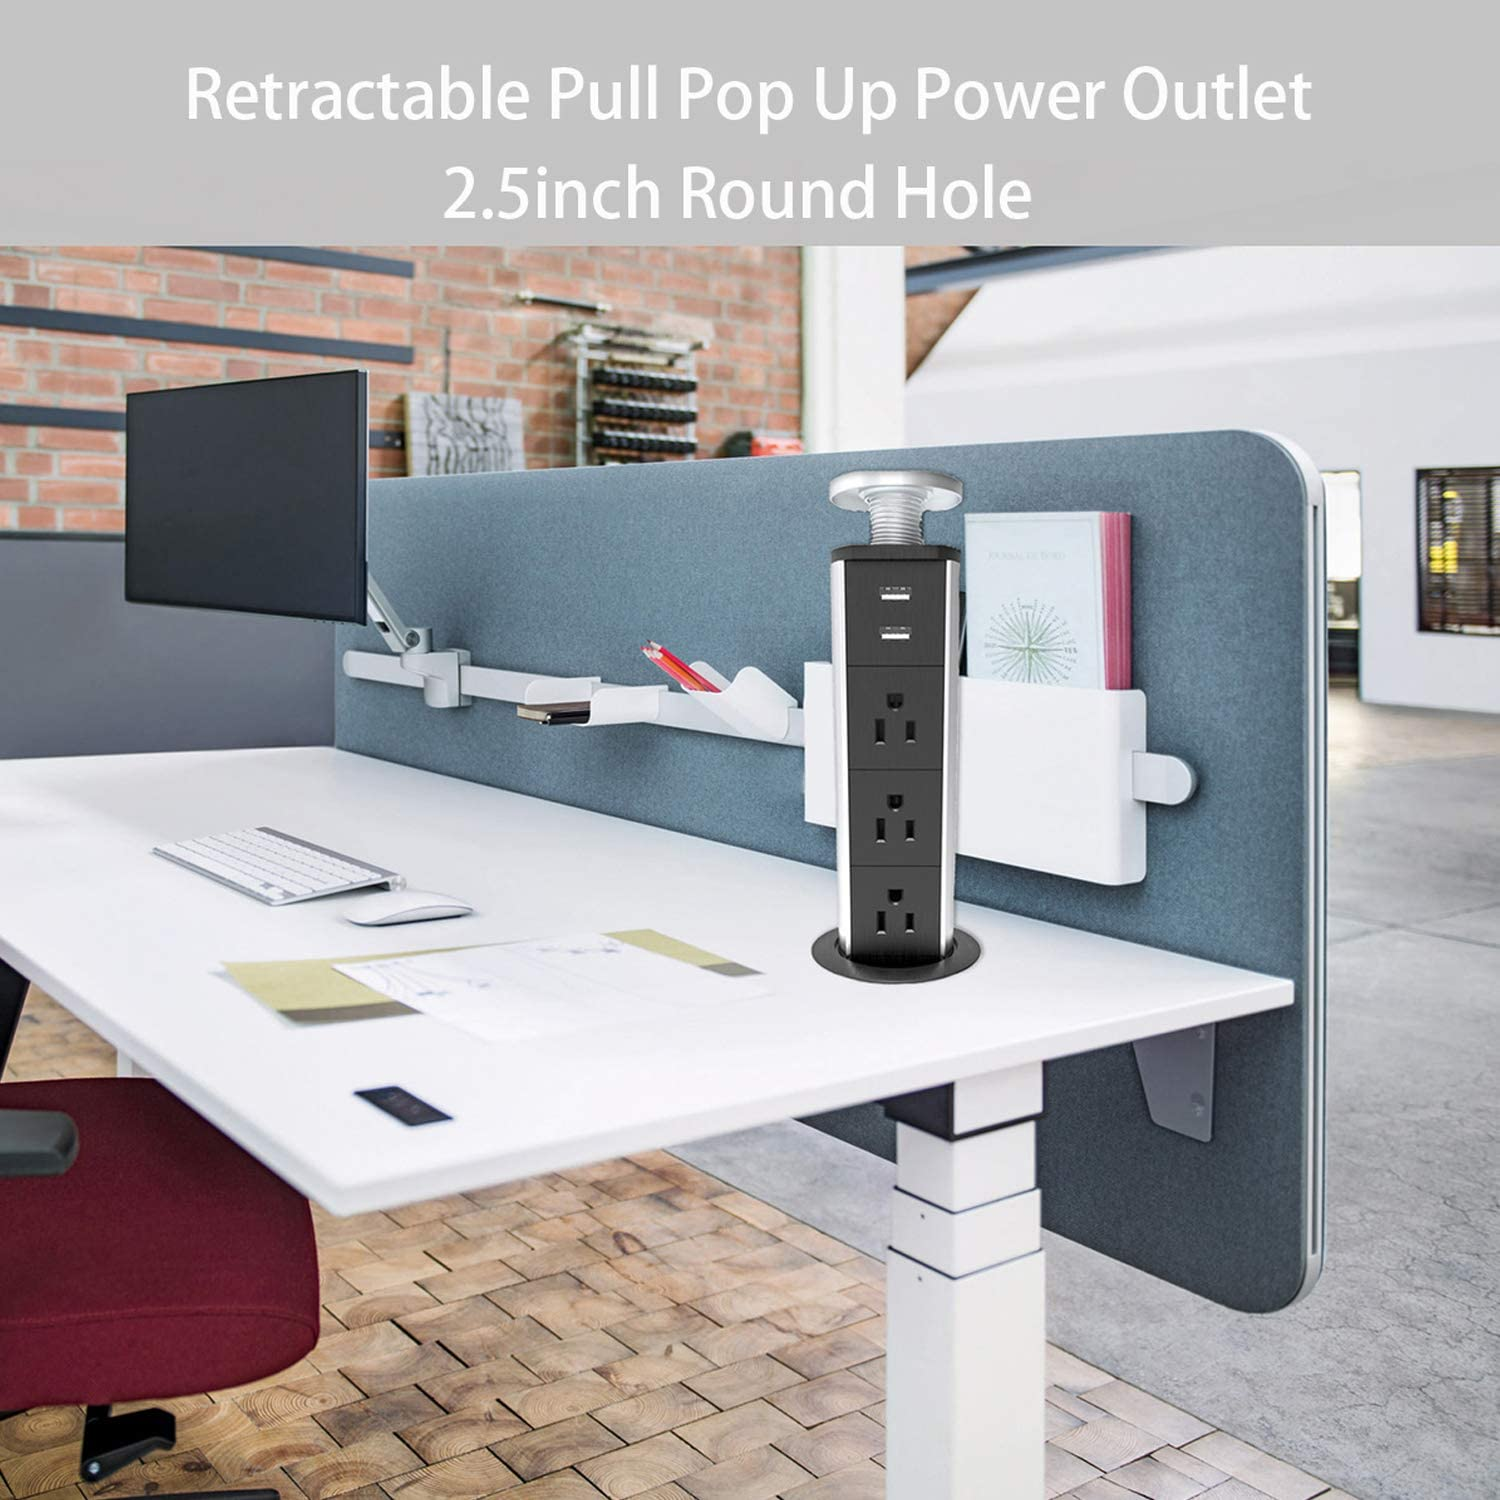 Pull Pop Up Électrique 3 Plug Socket 2 USB Table de cuisine Prise escamotable Home